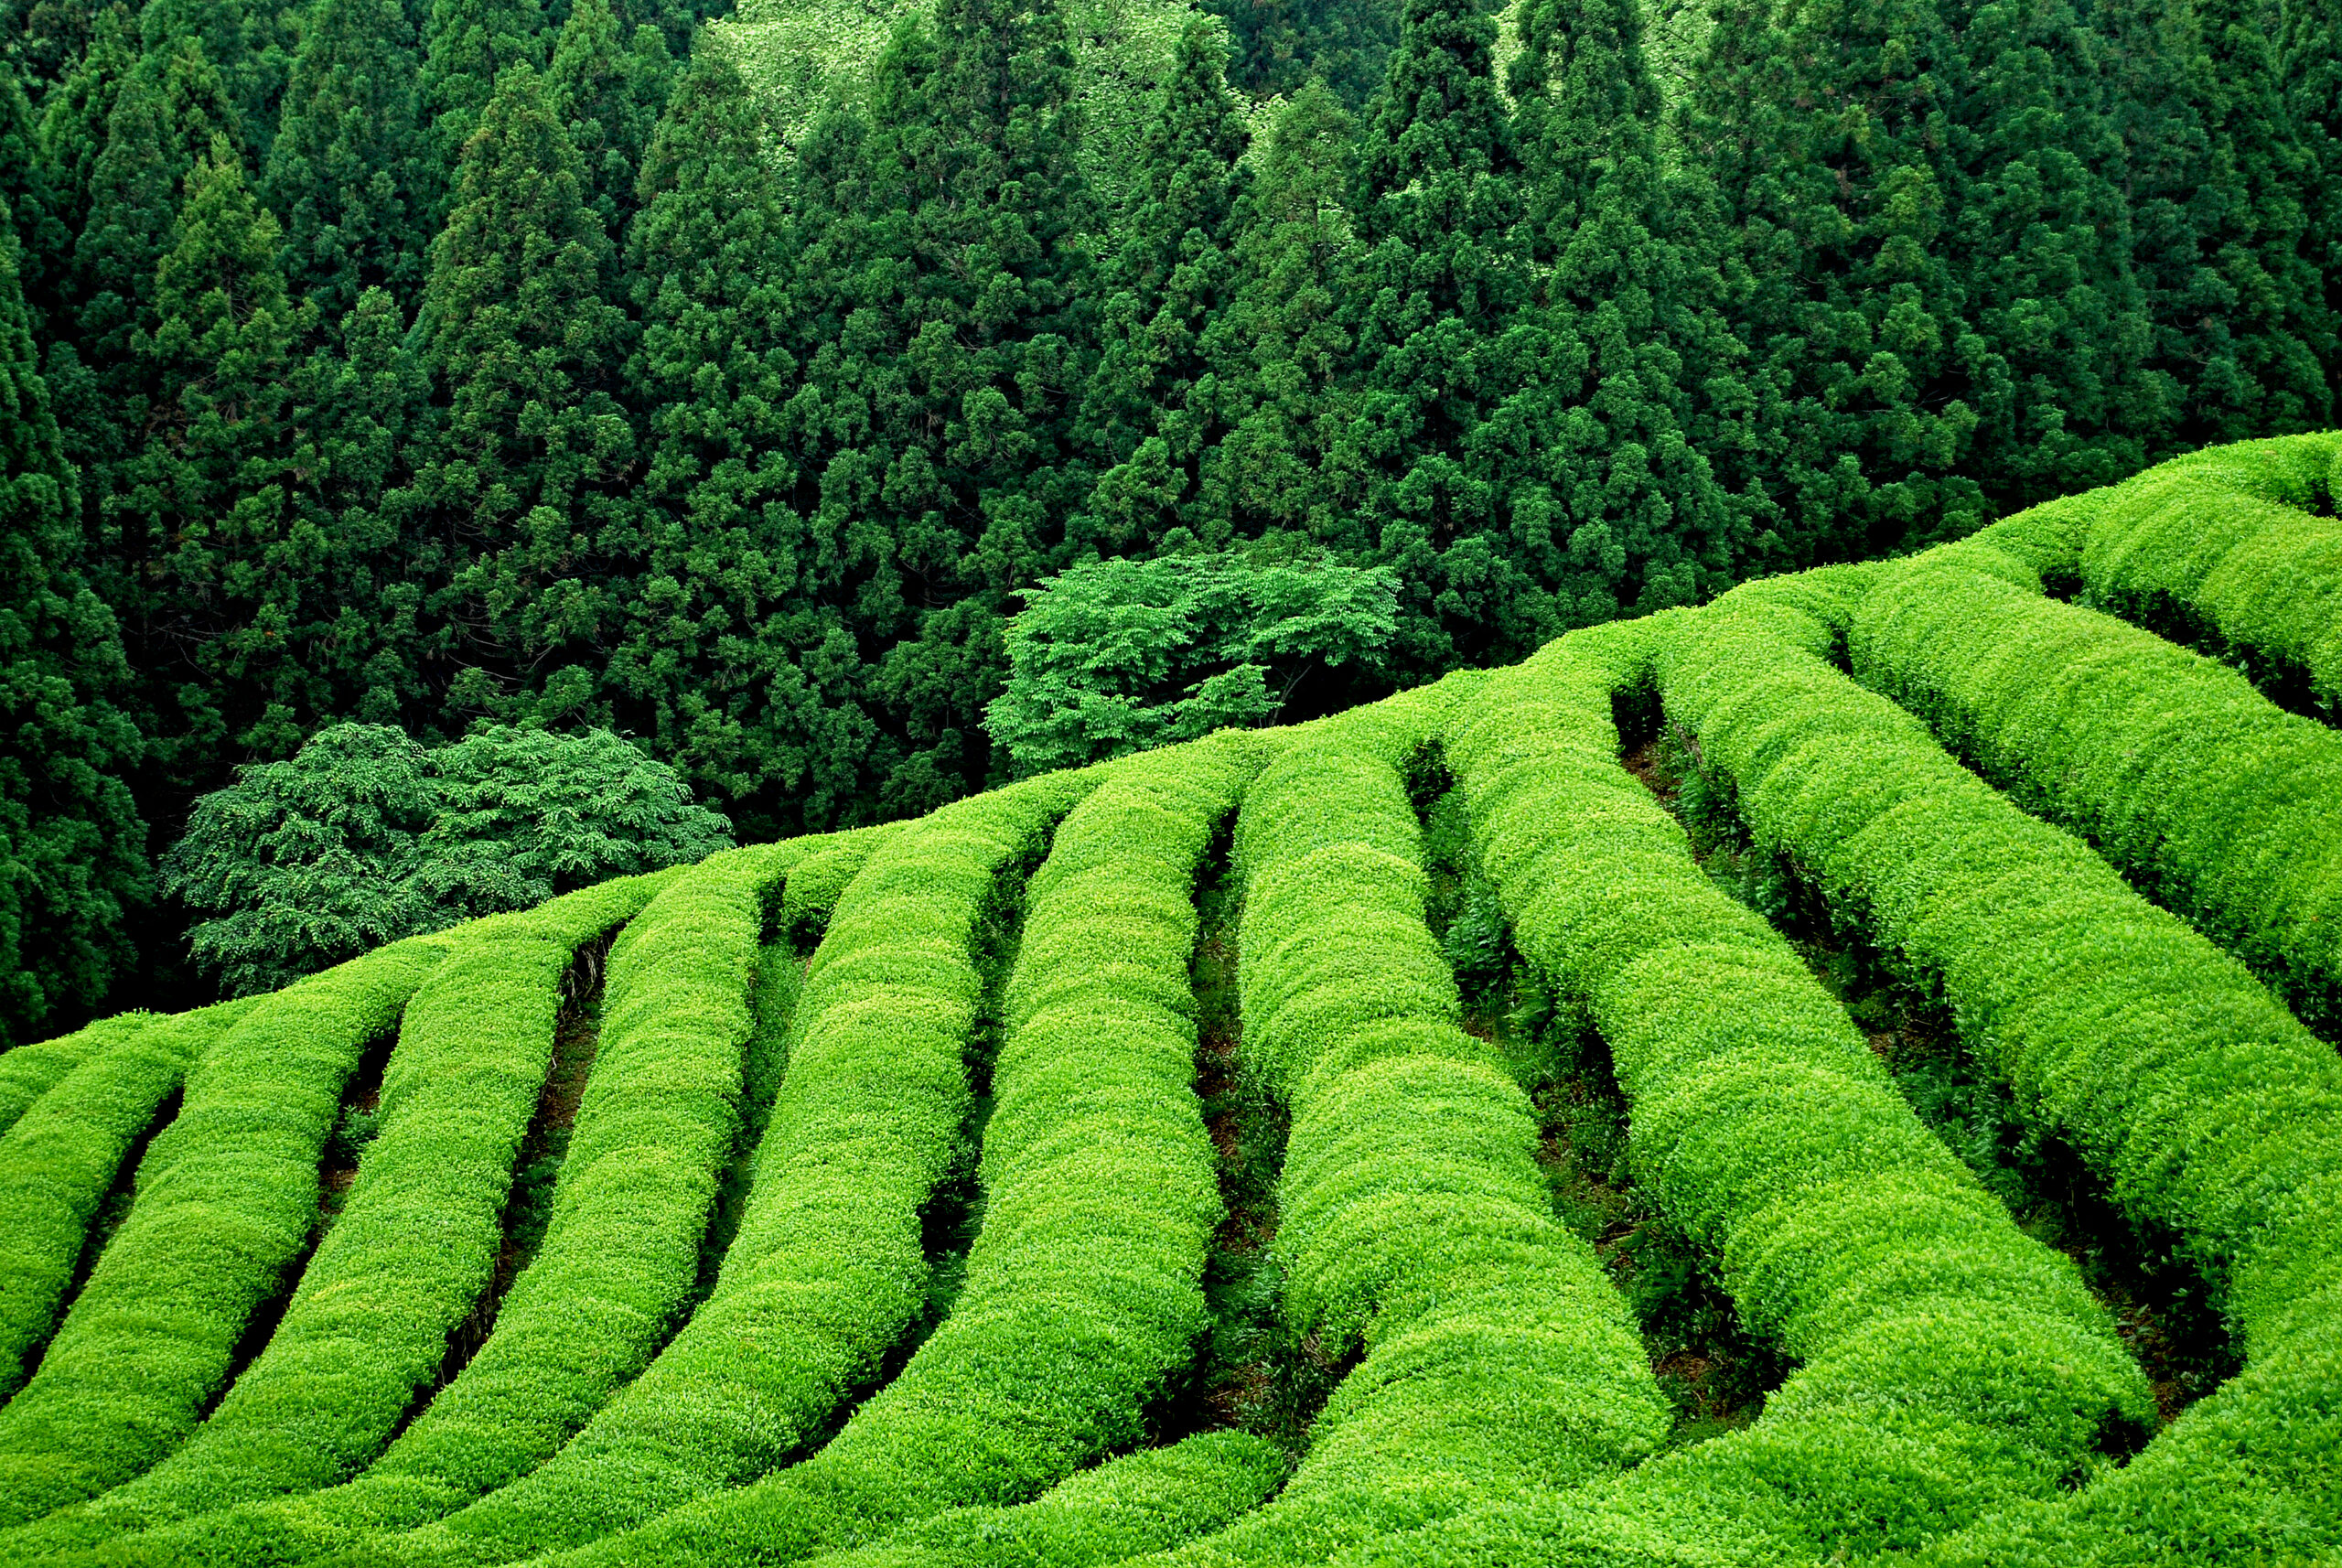 Tea plantation in South East Asia